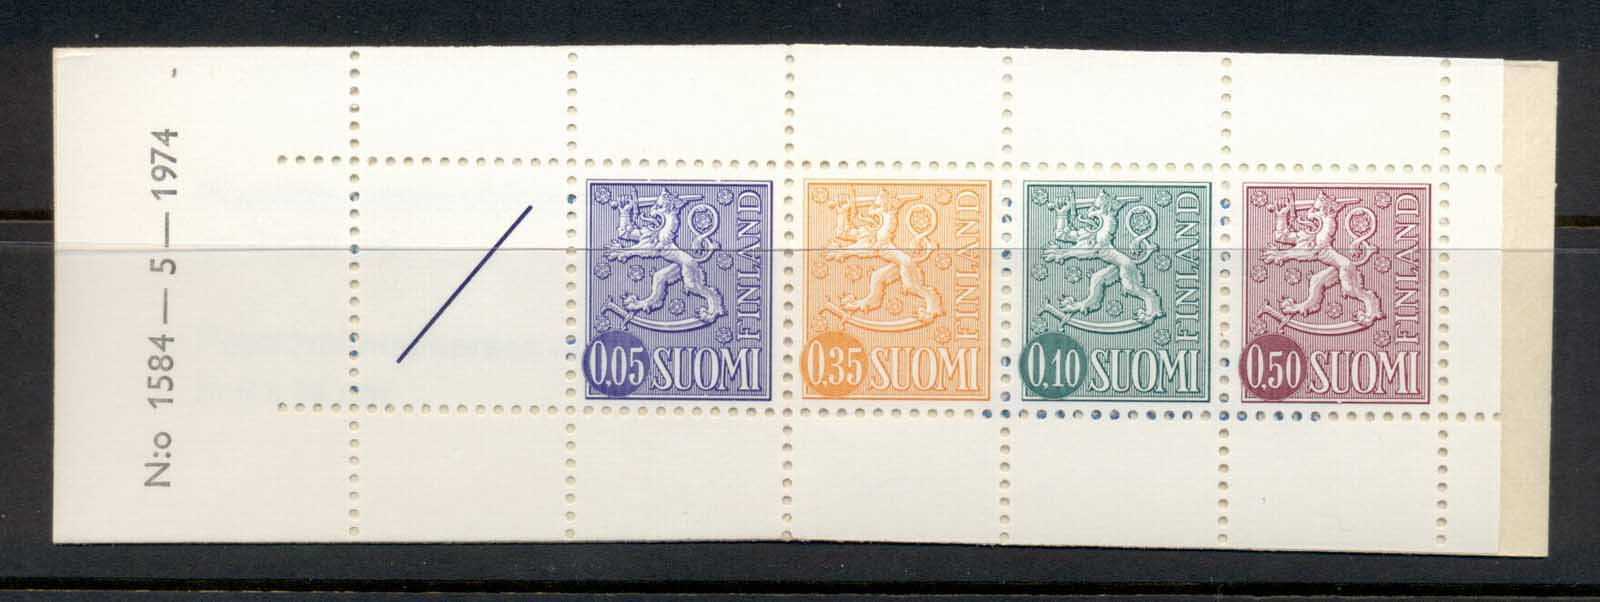 Finland 1968-78 Arms of Finland booklet 1x05,1x35,1x10,1x50, 1 label beige cover MUH